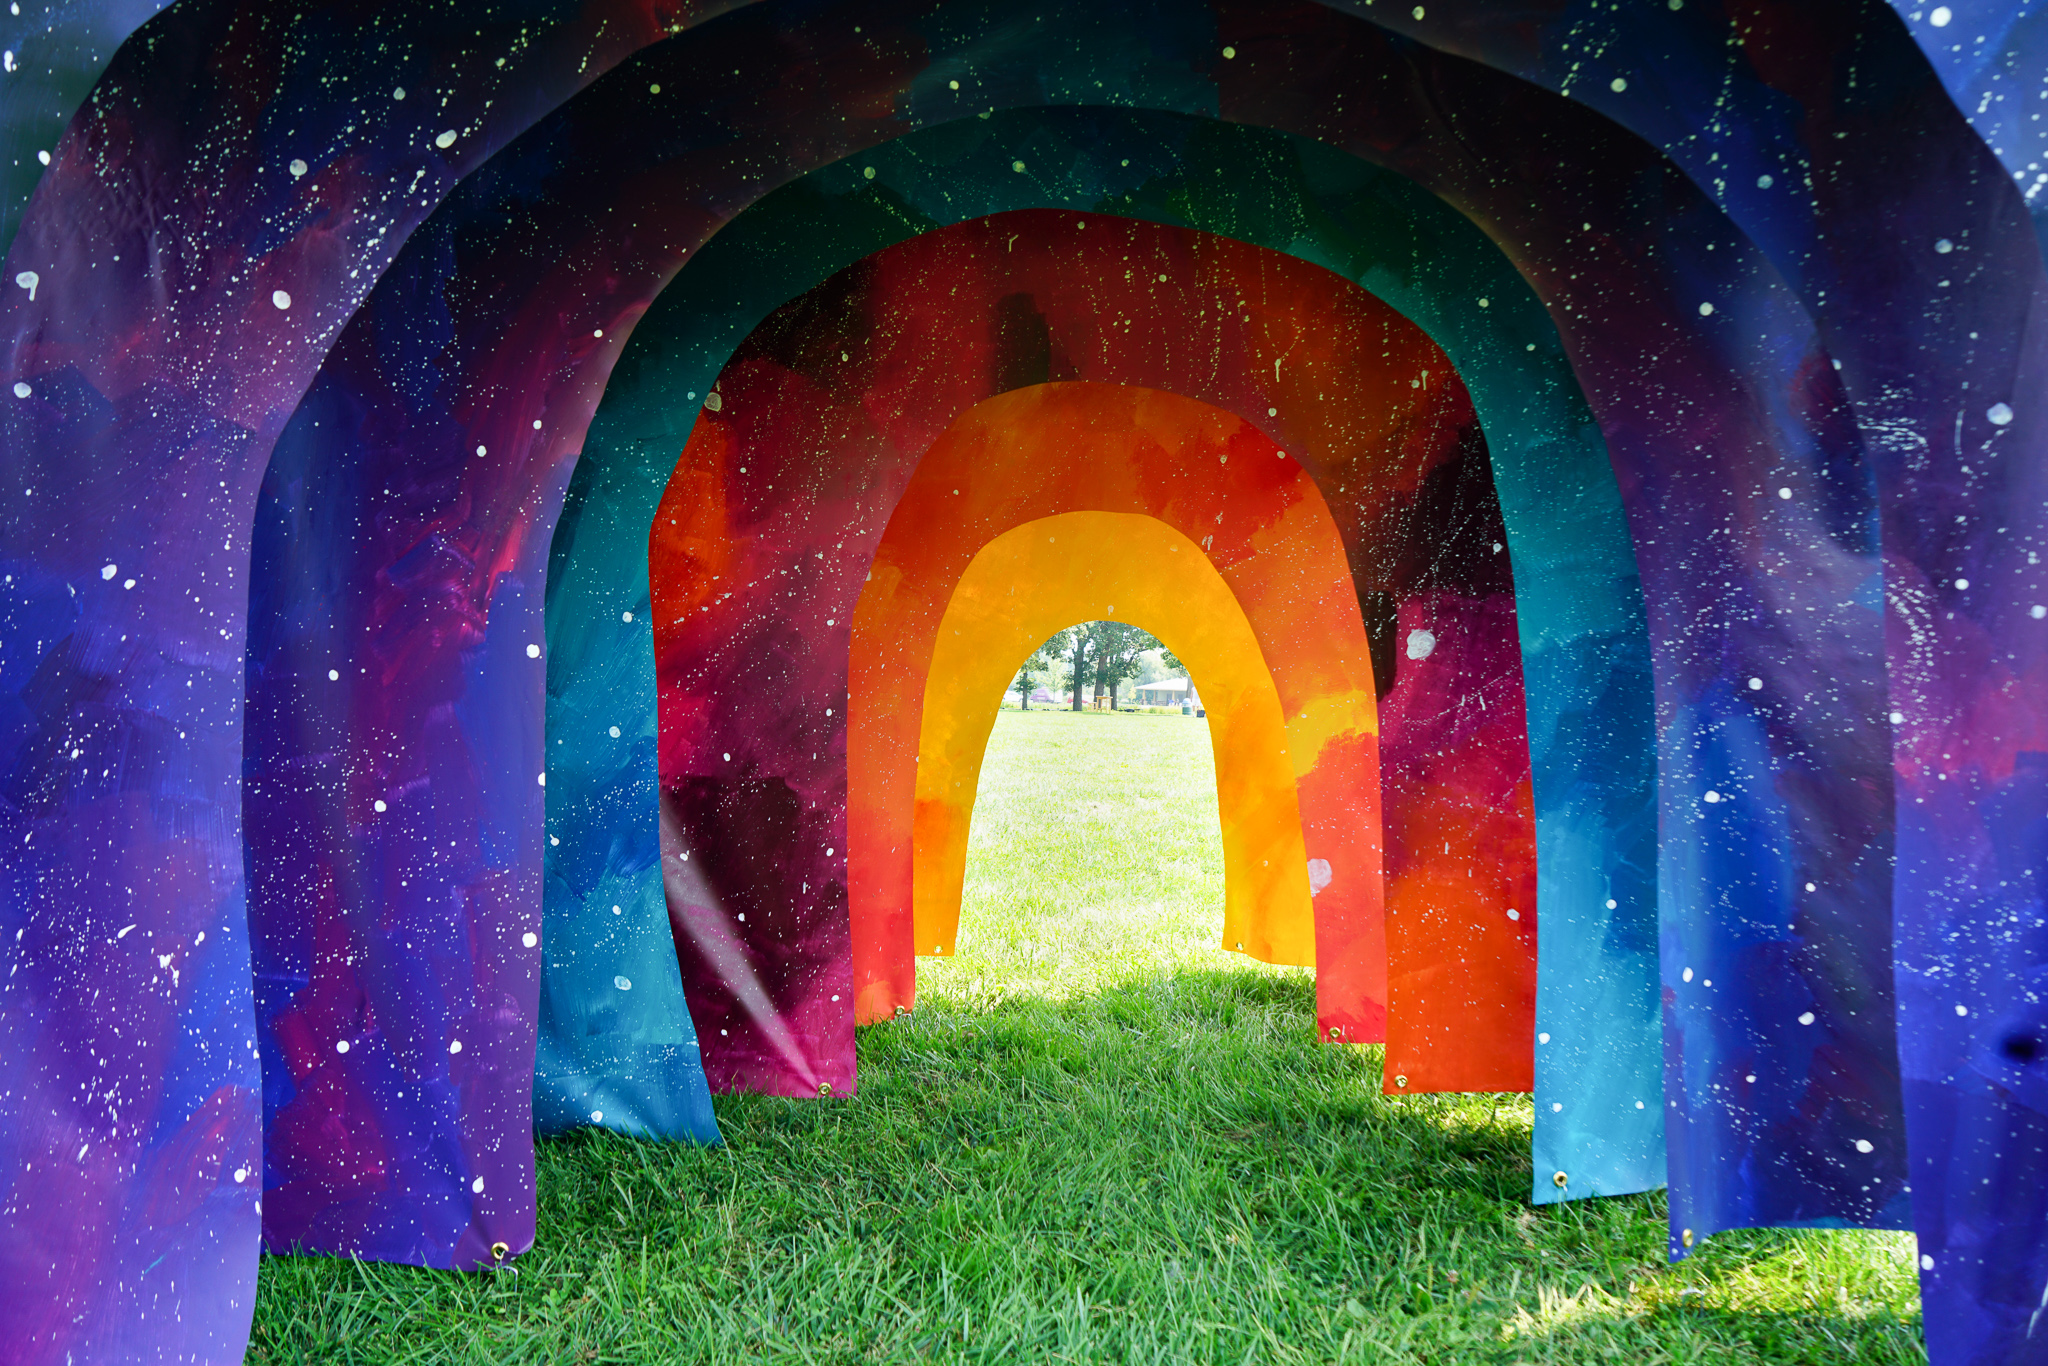 Portal  -  A Public Art Installation by Jenie Gao Studio for the 2018 Makeshift Festival